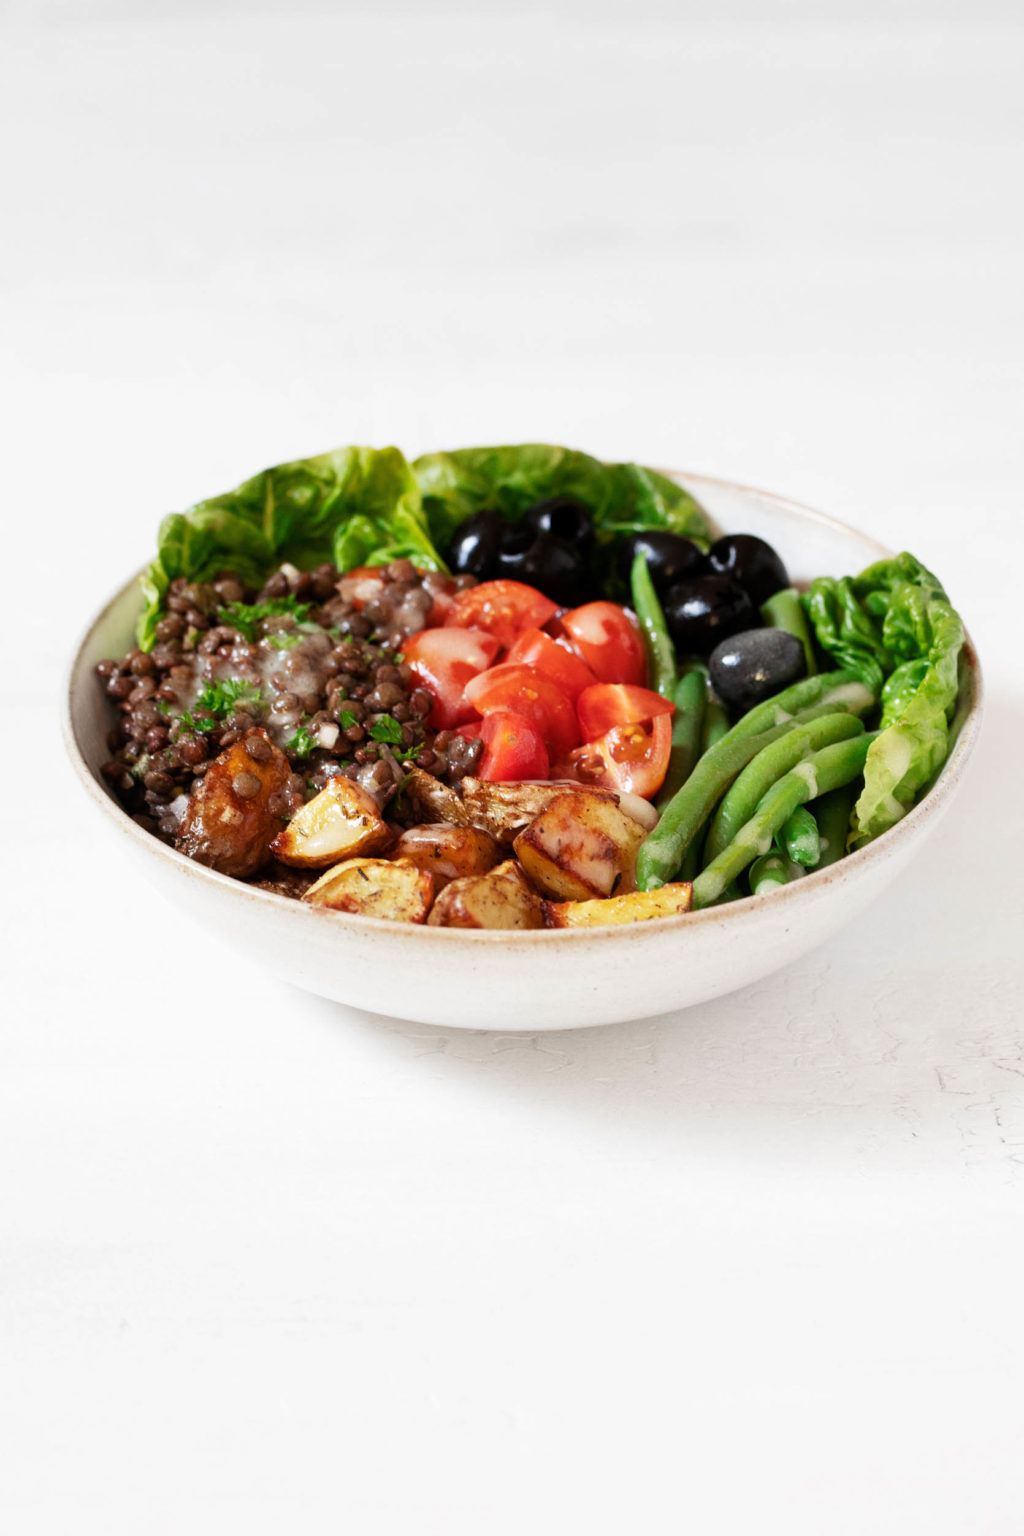 An angled photo of a round bowl of vegetarian lentil Niçoise salad, which is placed on a clean white surface.